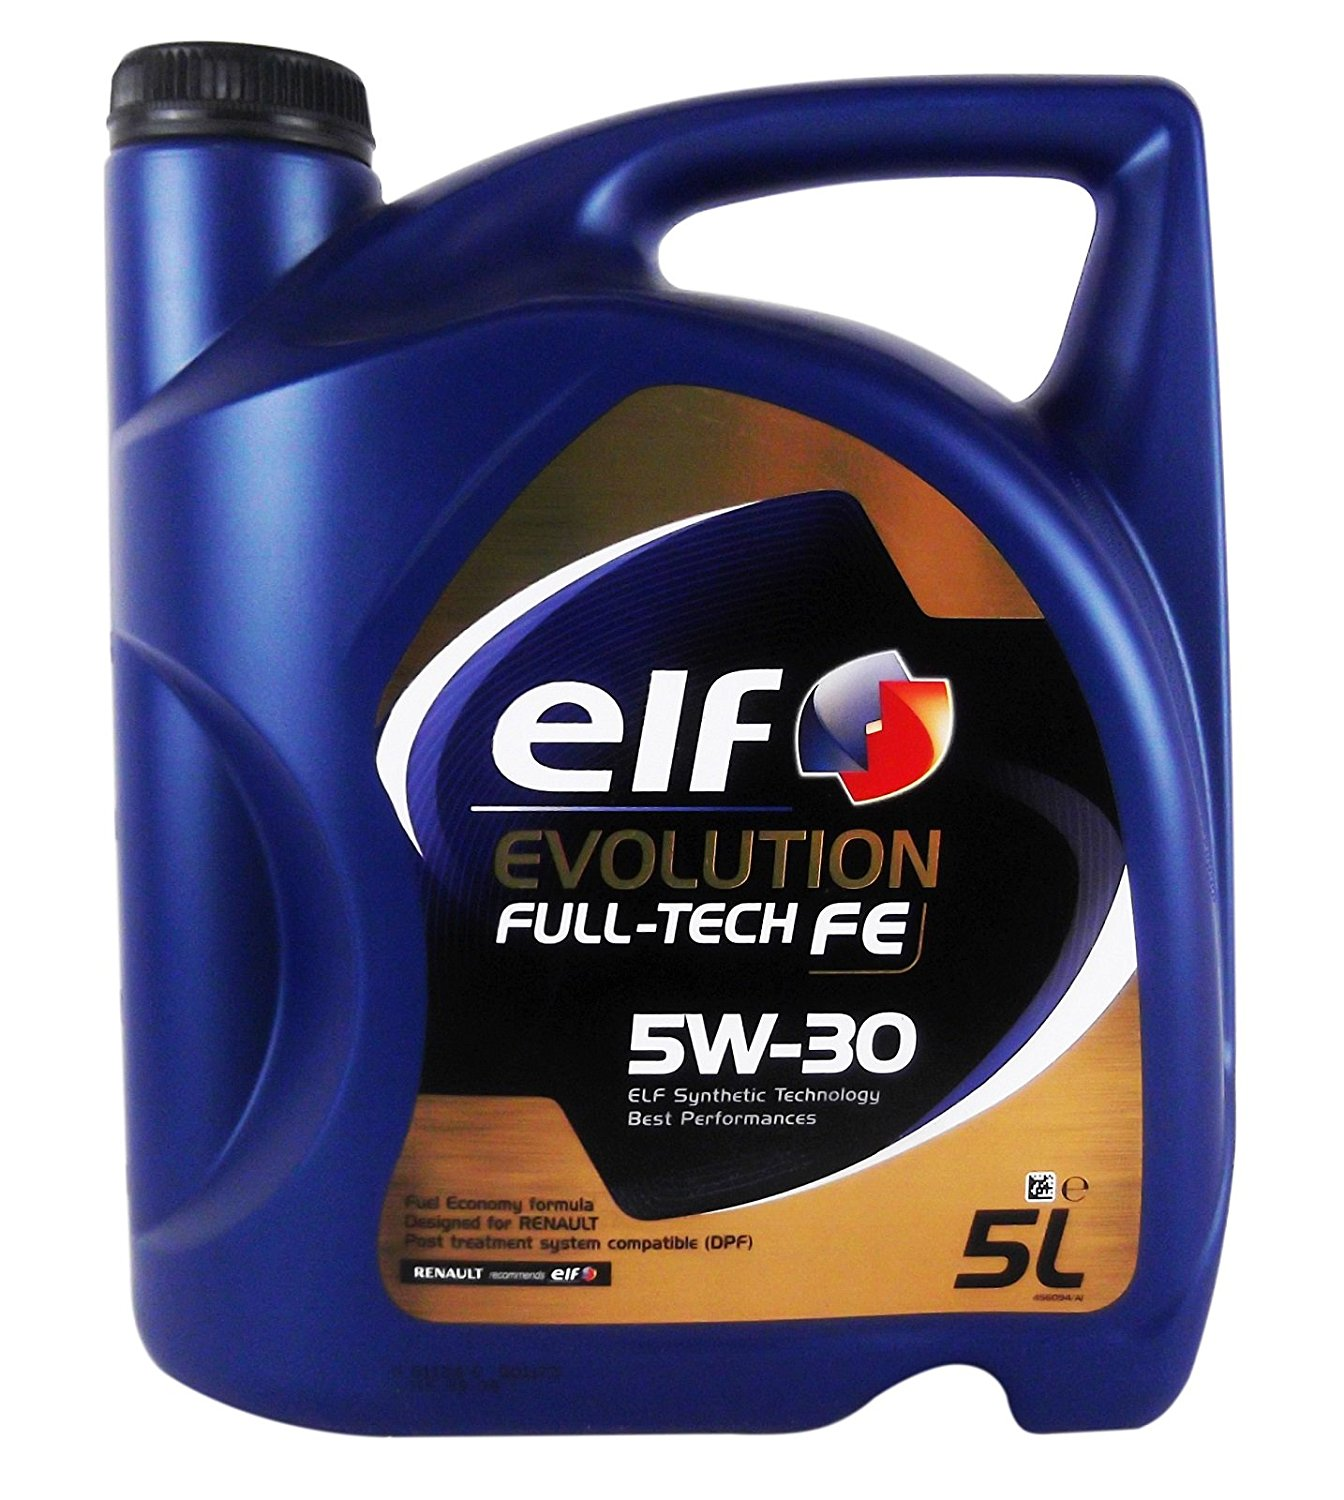 ELF Evolution FULL-TECH LLX 5W-30 - 5 L